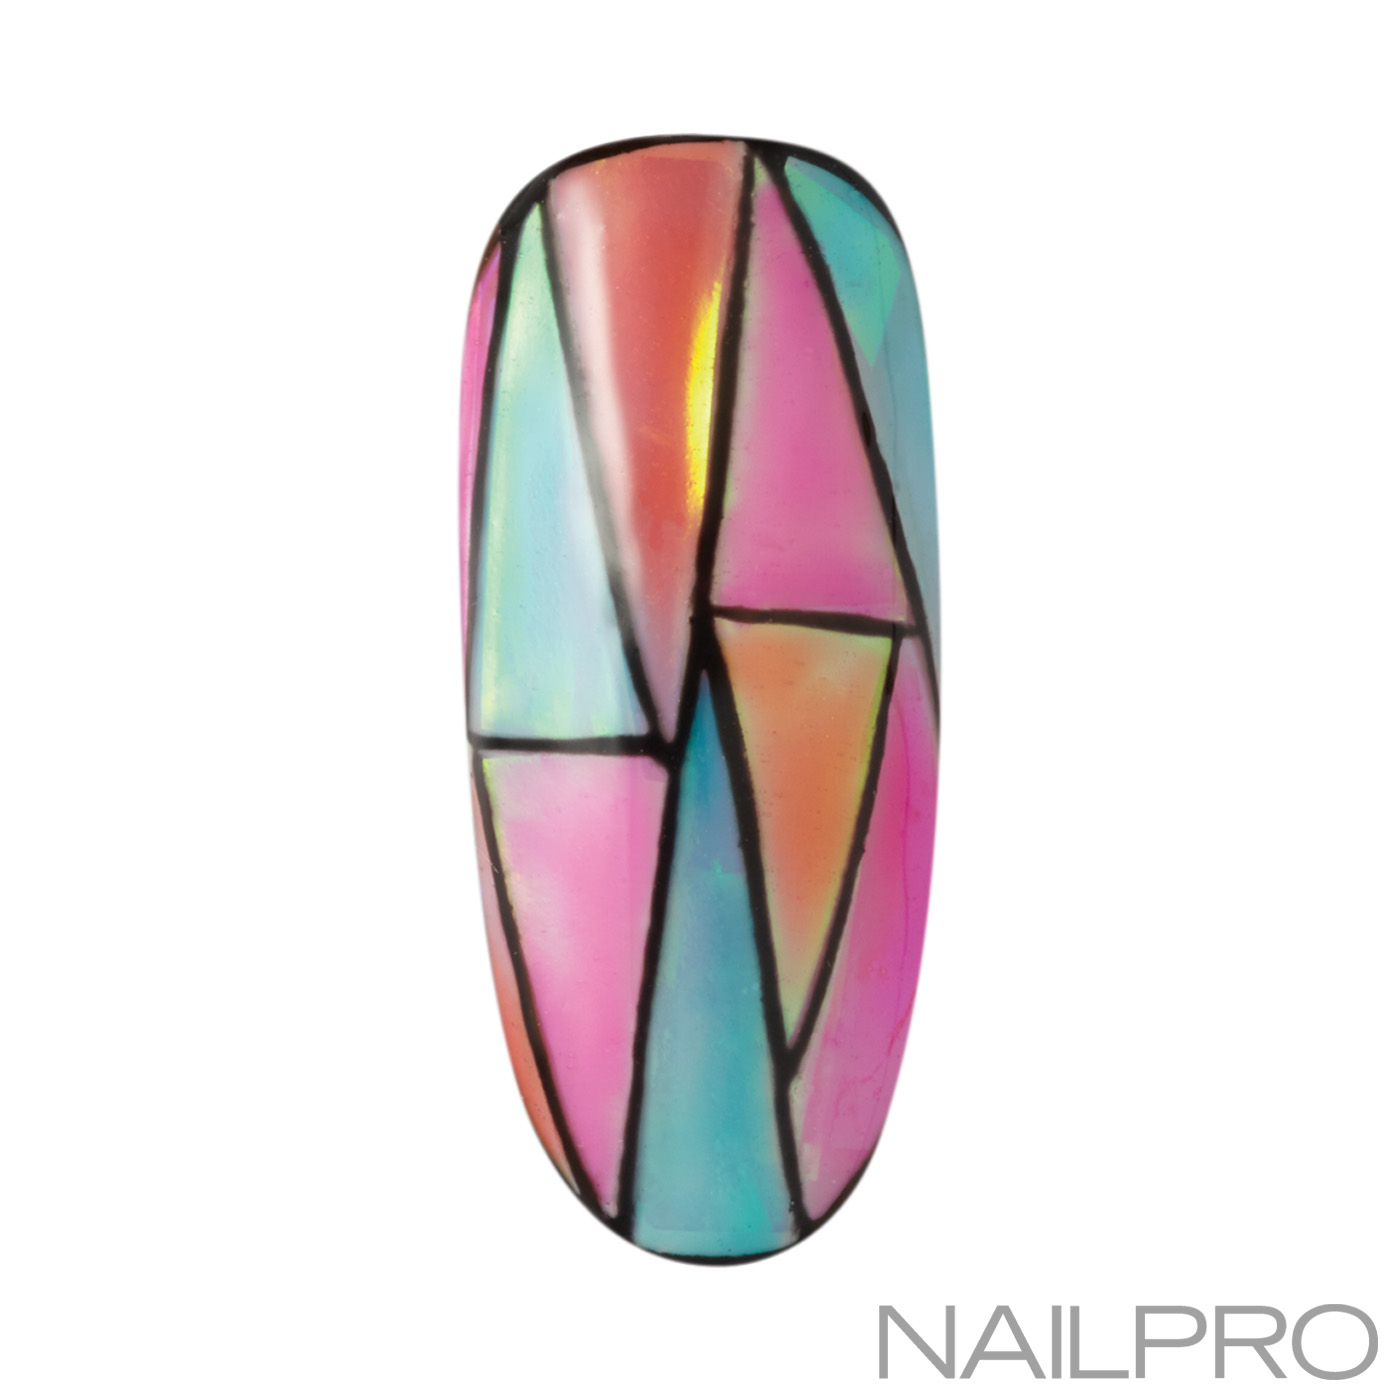 Stained glass gels: what is it, how to apply and why to use it